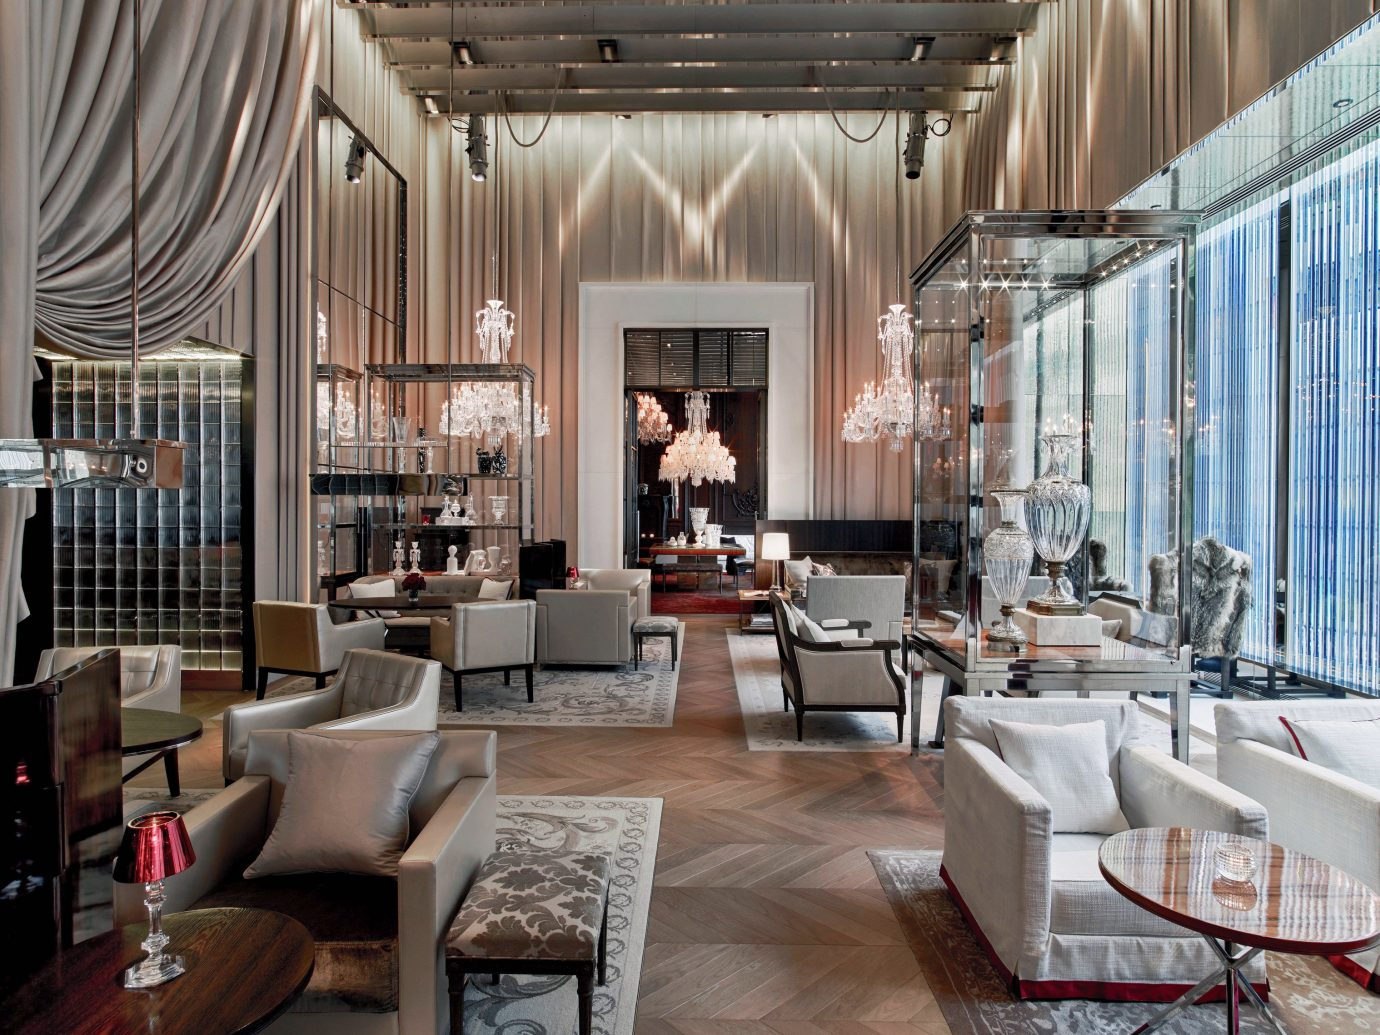 Baccarat Hotel & Residences, Best Hotels in NYC, restaurant meal interior design Hotels NYC indoor room Living floor Lobby property window furniture living room interior design curtain Boutique estate Design home restaurant condominium window covering decorated